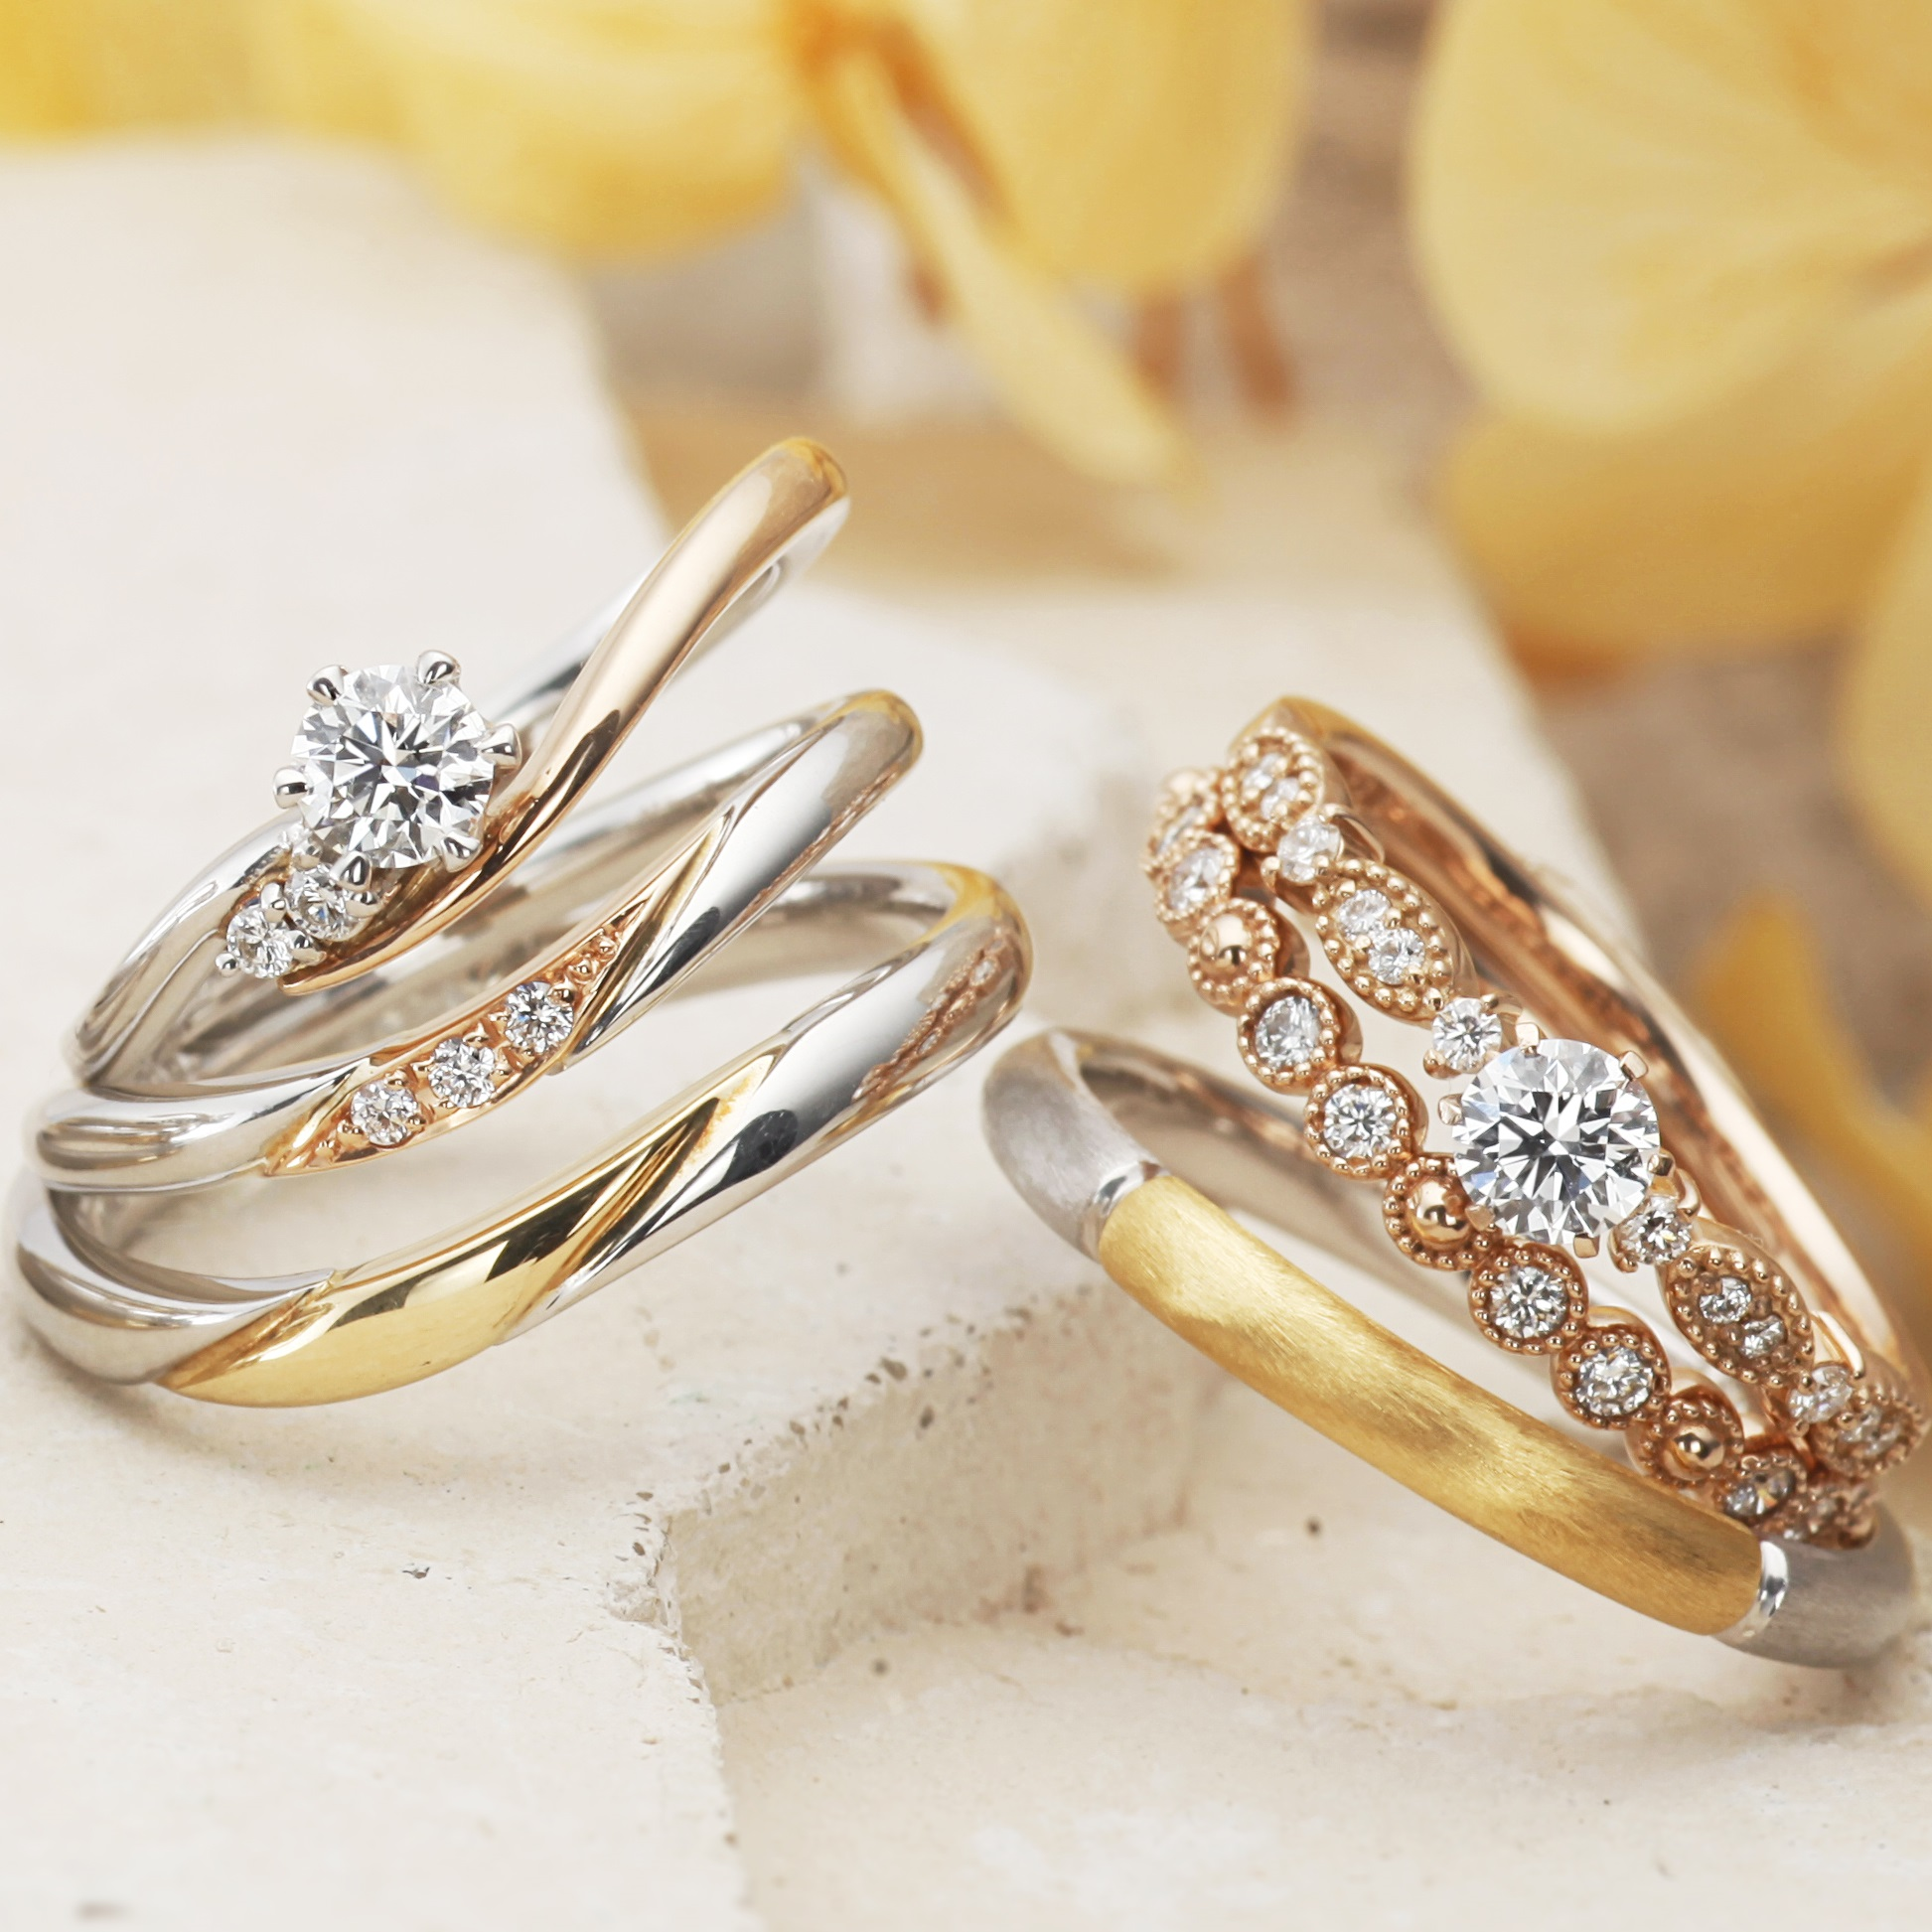 rings marieandcallumrings big binary best shopping for ring your day bling good kong wedding perfect in hong